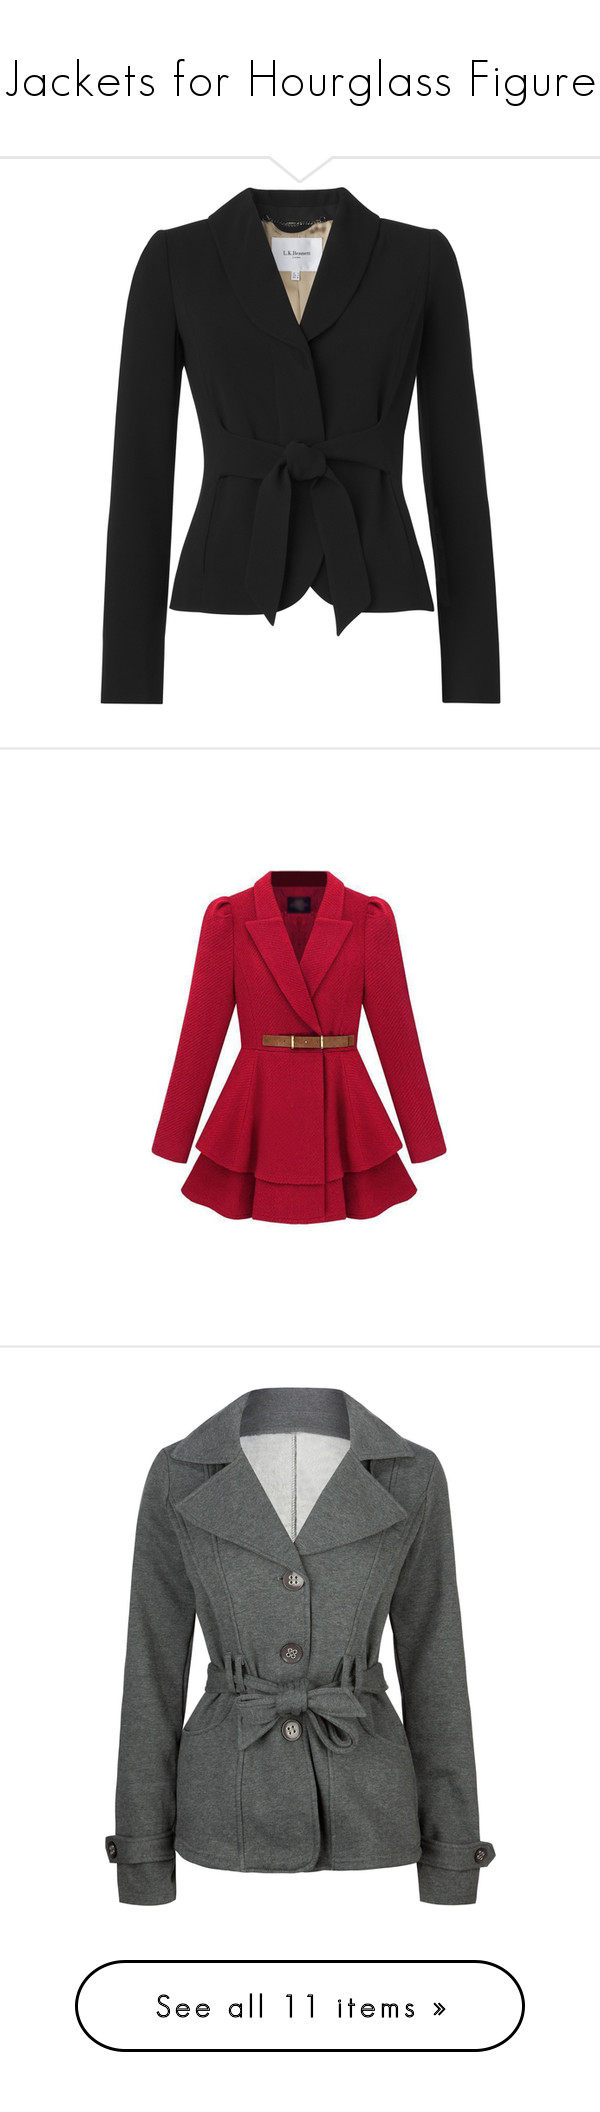 """""""Jackets for Hourglass Figure"""" by floweringsucculent ❤ liked on Polyvore featuring outerwear, jackets, blazer, black, tops, shawl collar jacket, belted jacket, shawl collar blazer, tailored blazer and blazer jacket"""